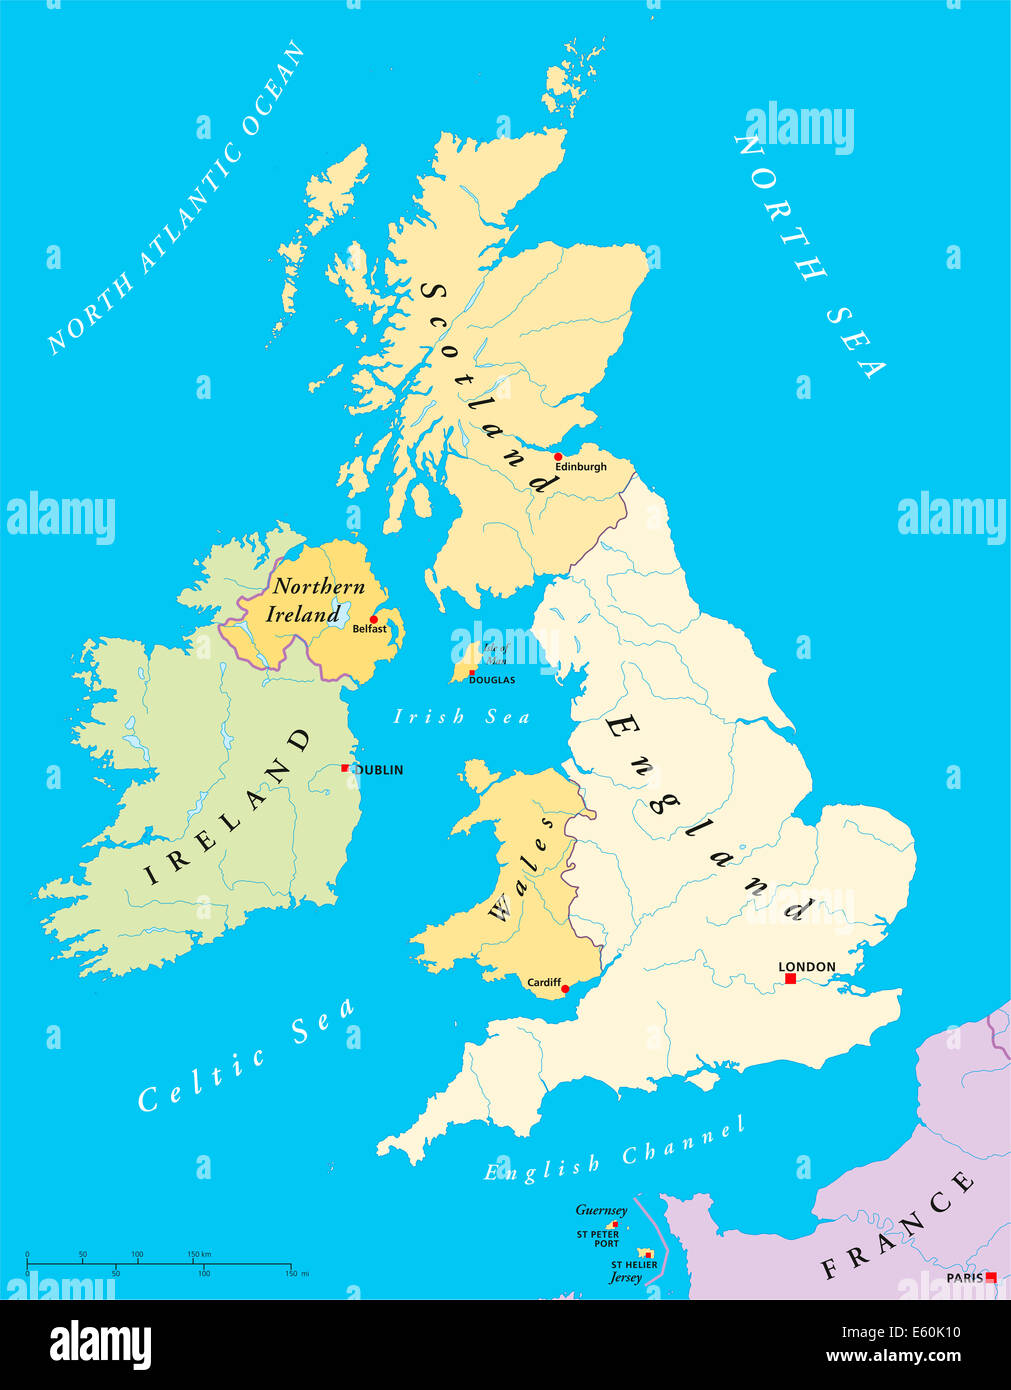 Map British Isles British Isles Map   British Isles Map with capitals, national  Map British Isles